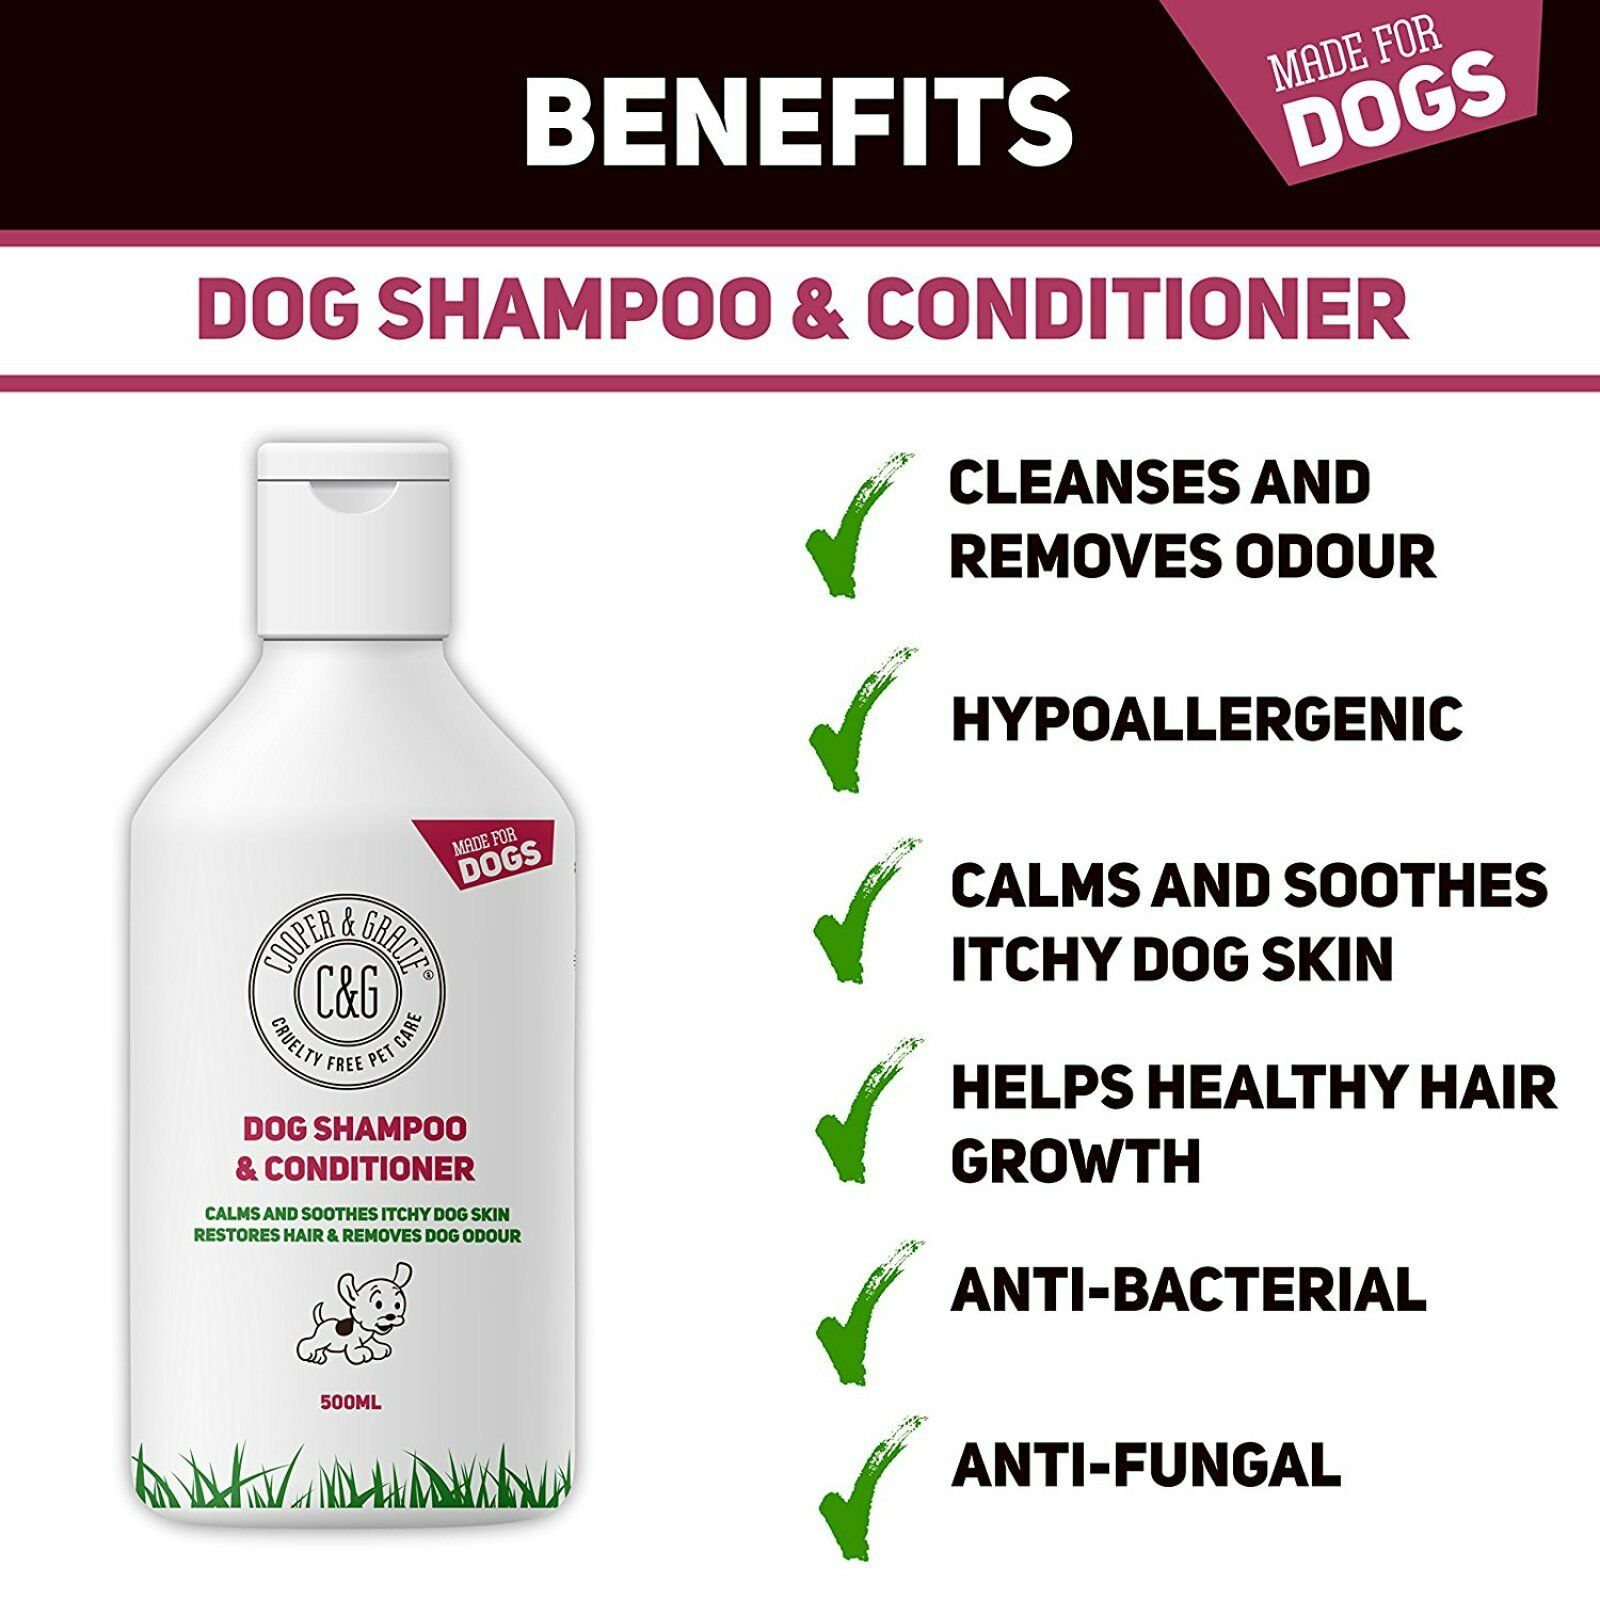 C&G Dog Shampoo for Smelly Dogs and